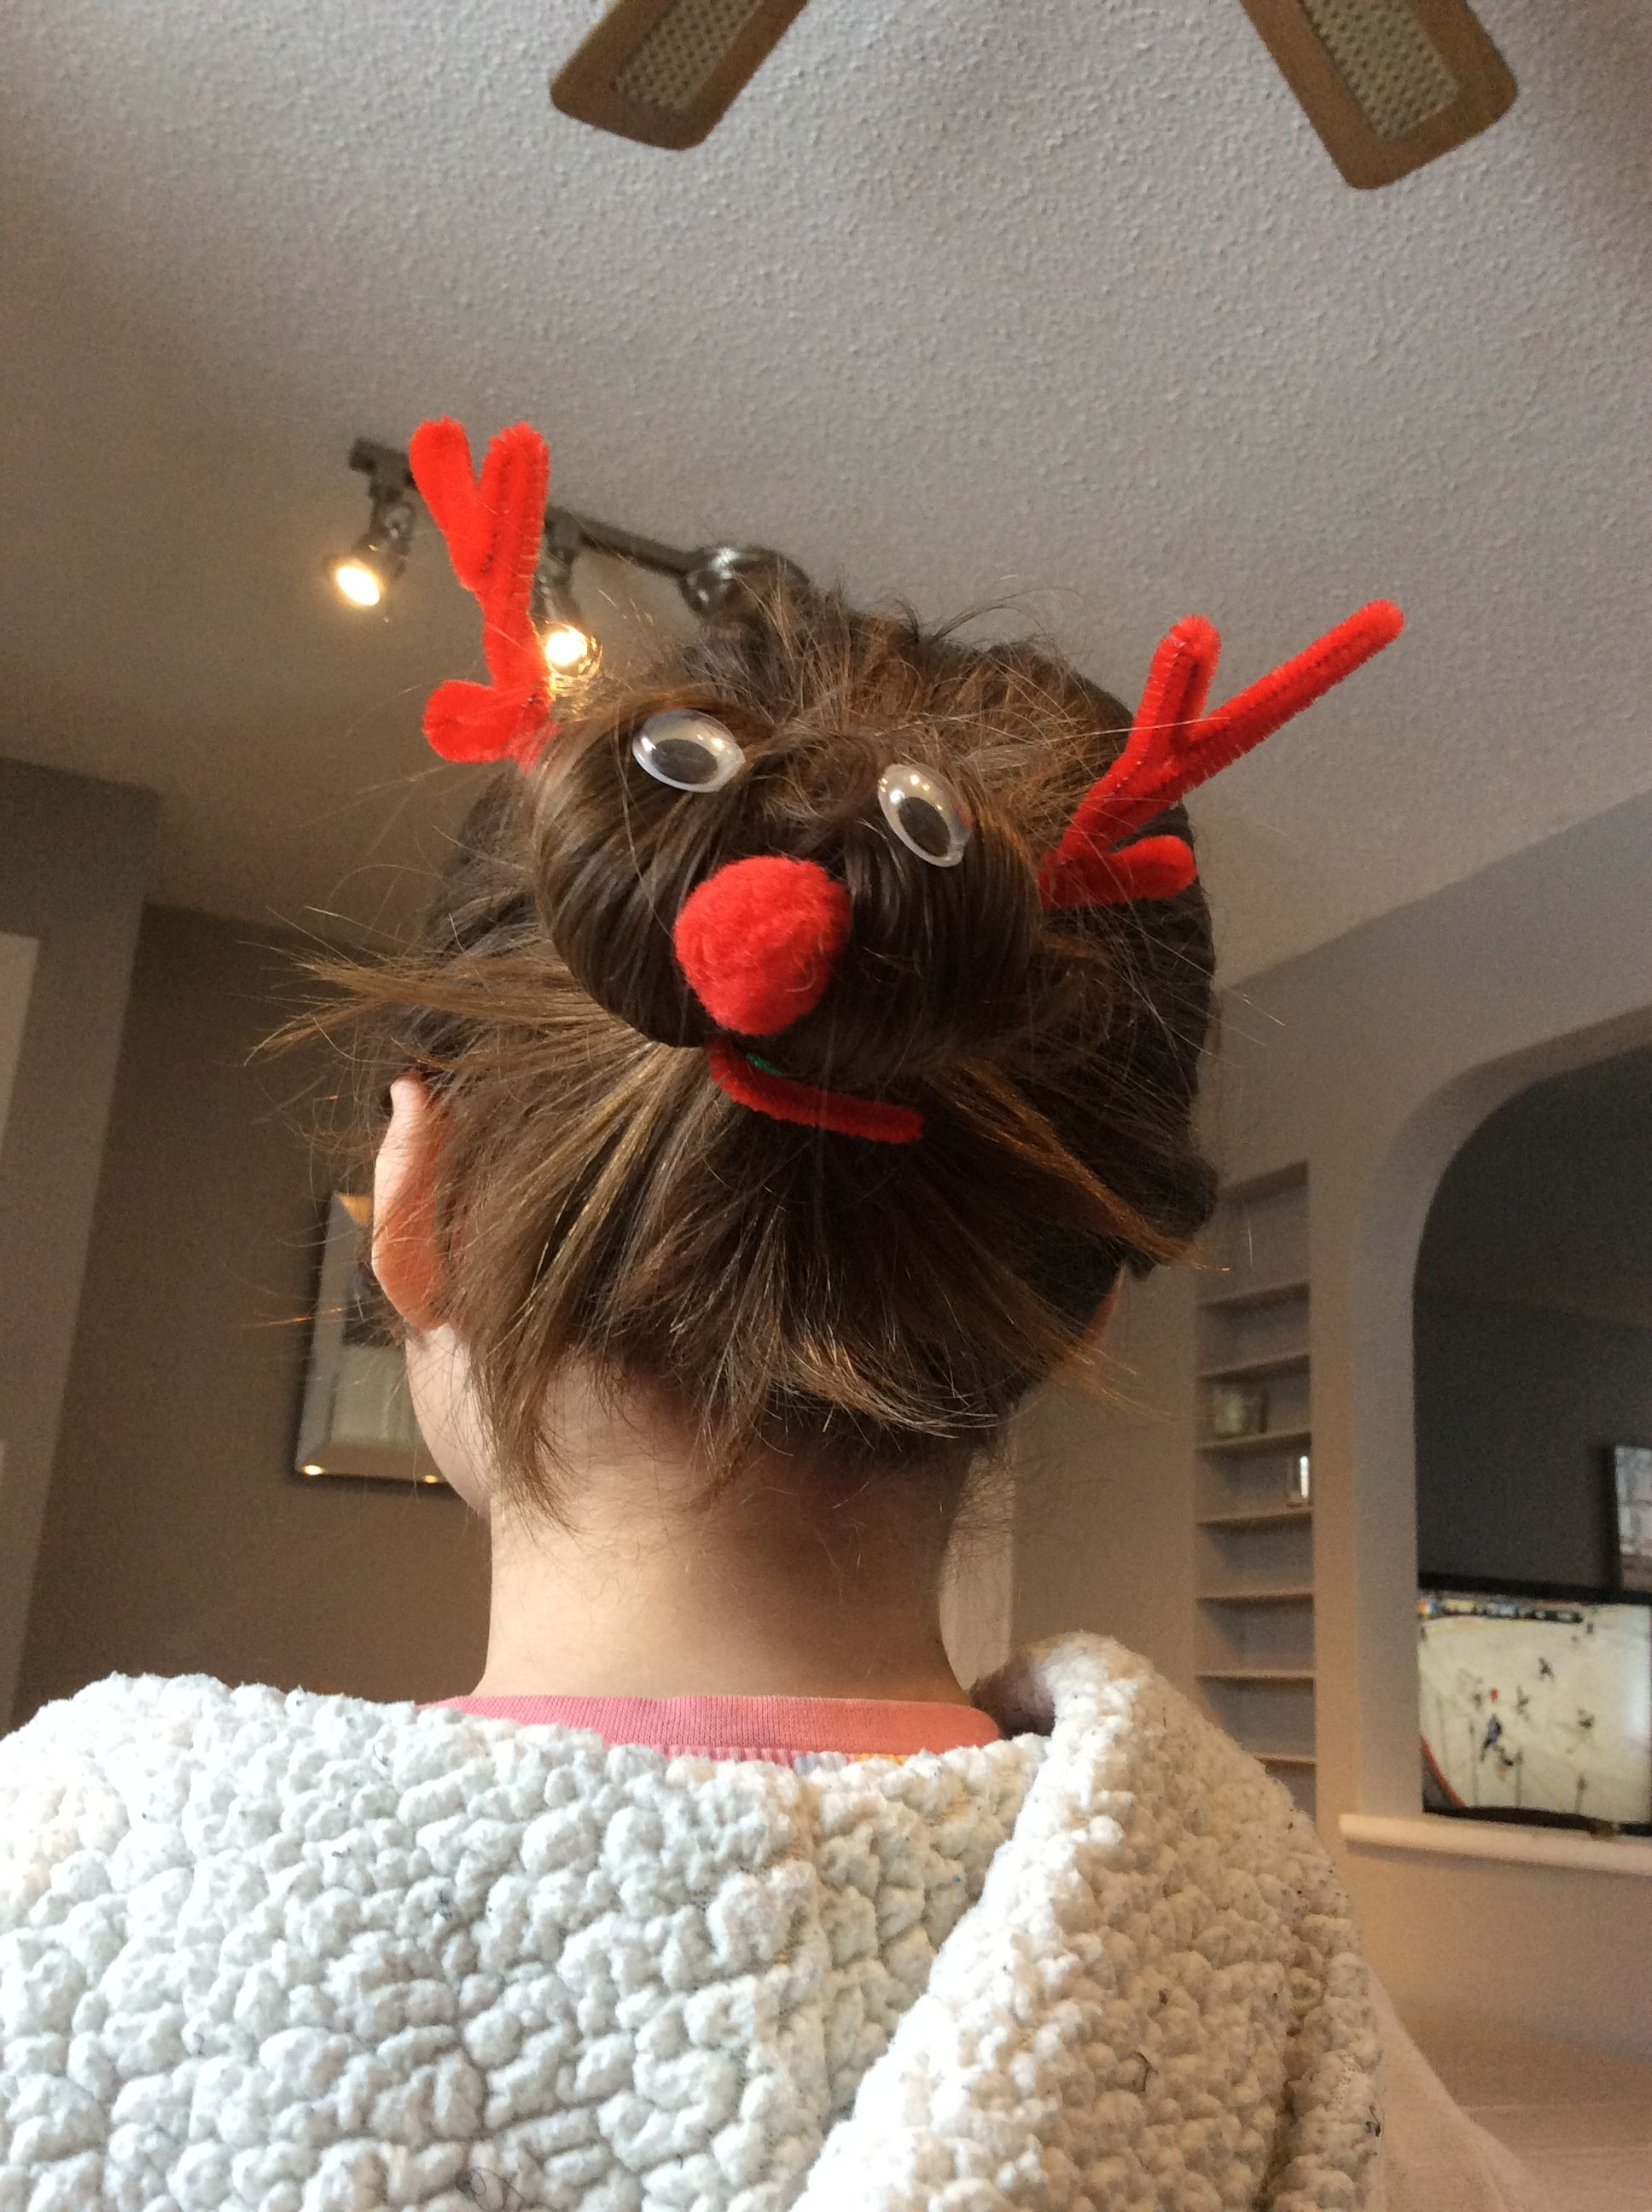 Rudolph the red nosed raindeer hair style!